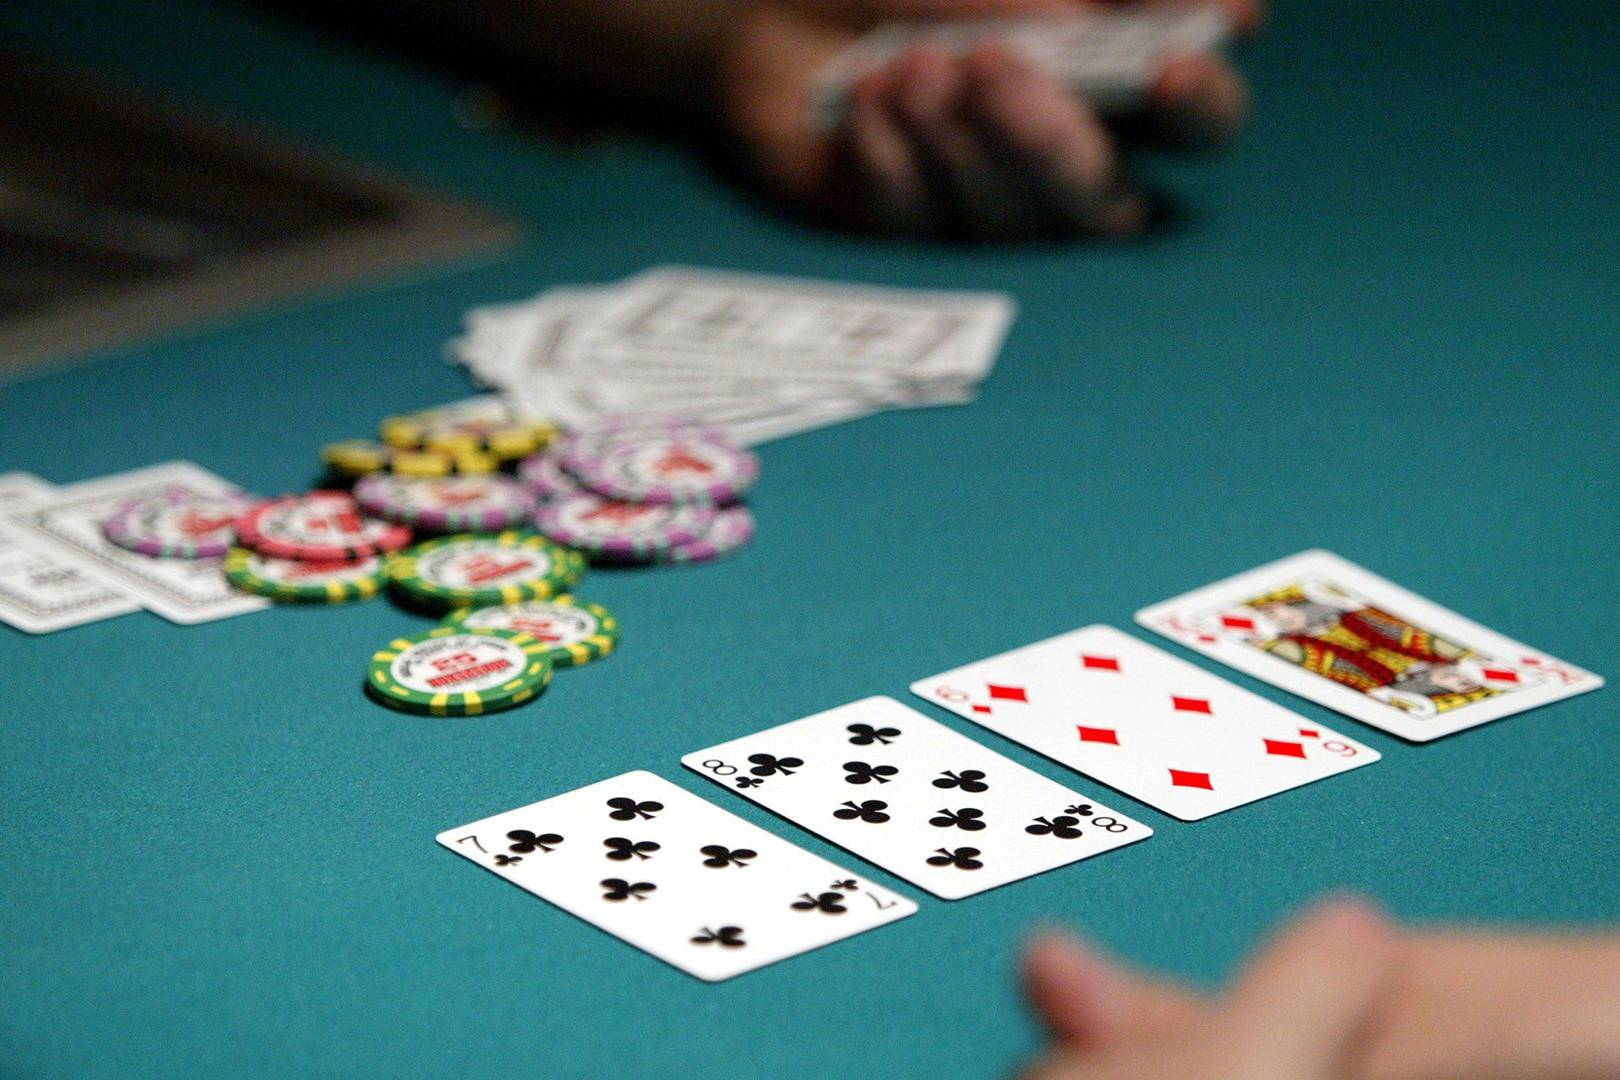 Playing Baccarat Games Can Improve Your Memory.